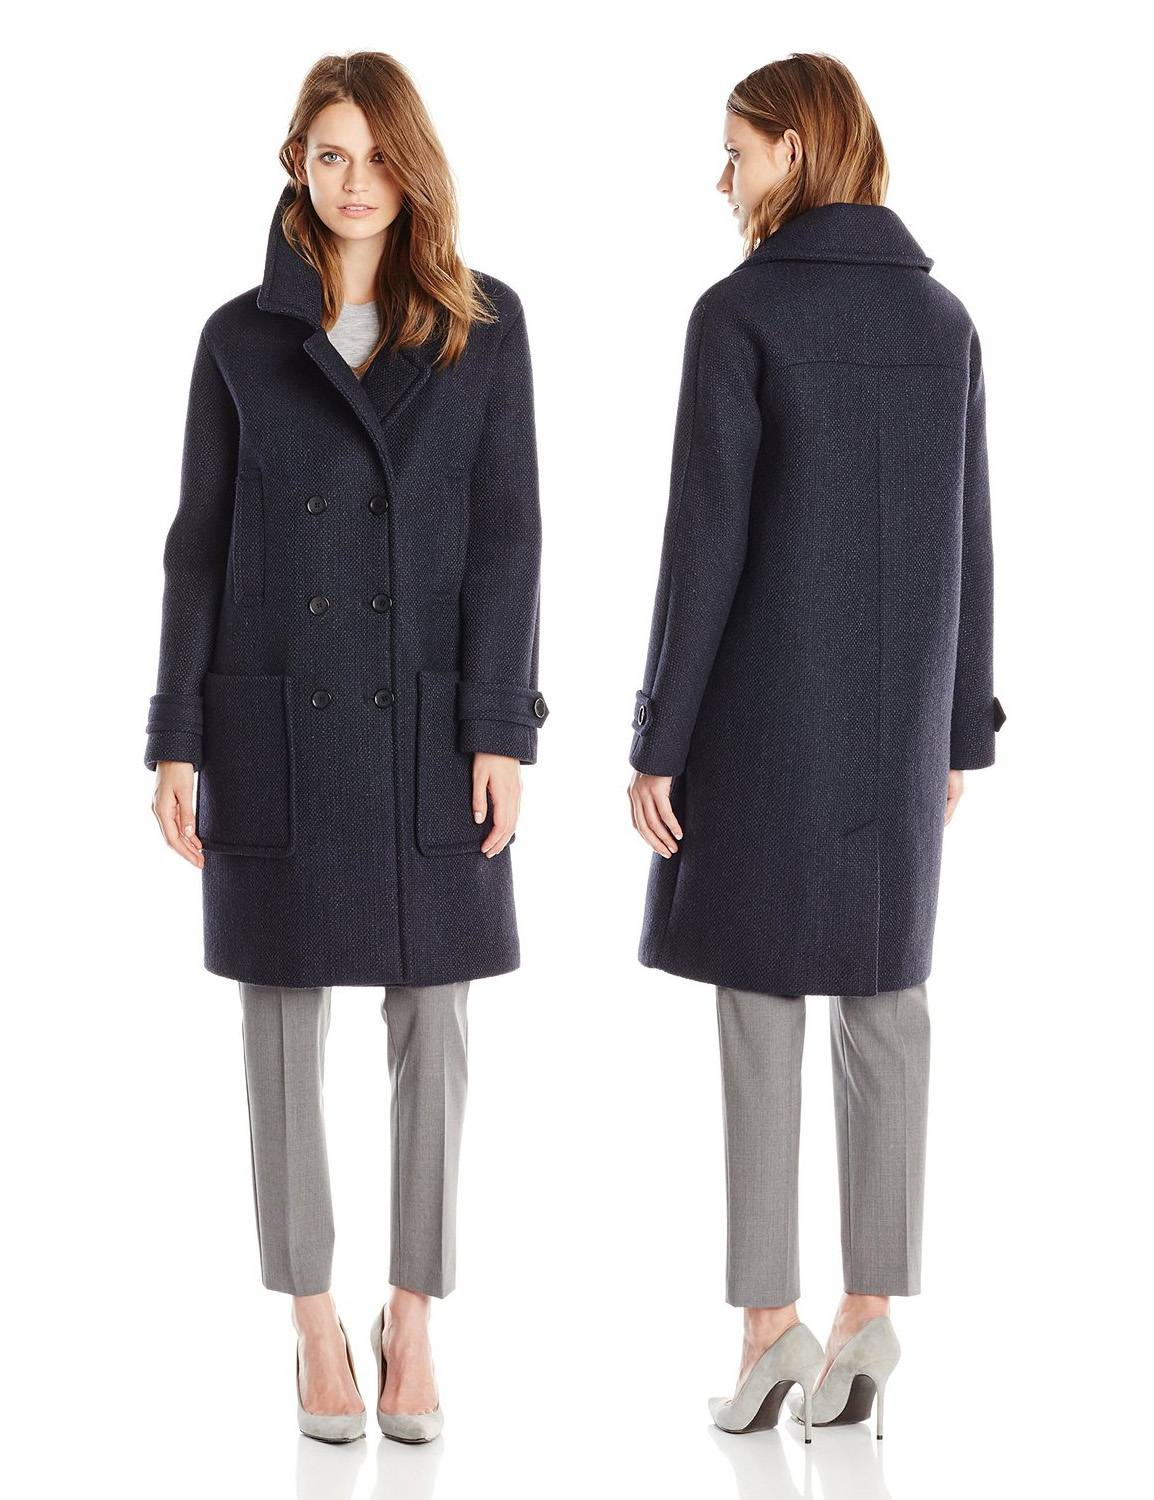 Tommy Hilfiger Womens Wool-Blend Neoprene Fashion Coat